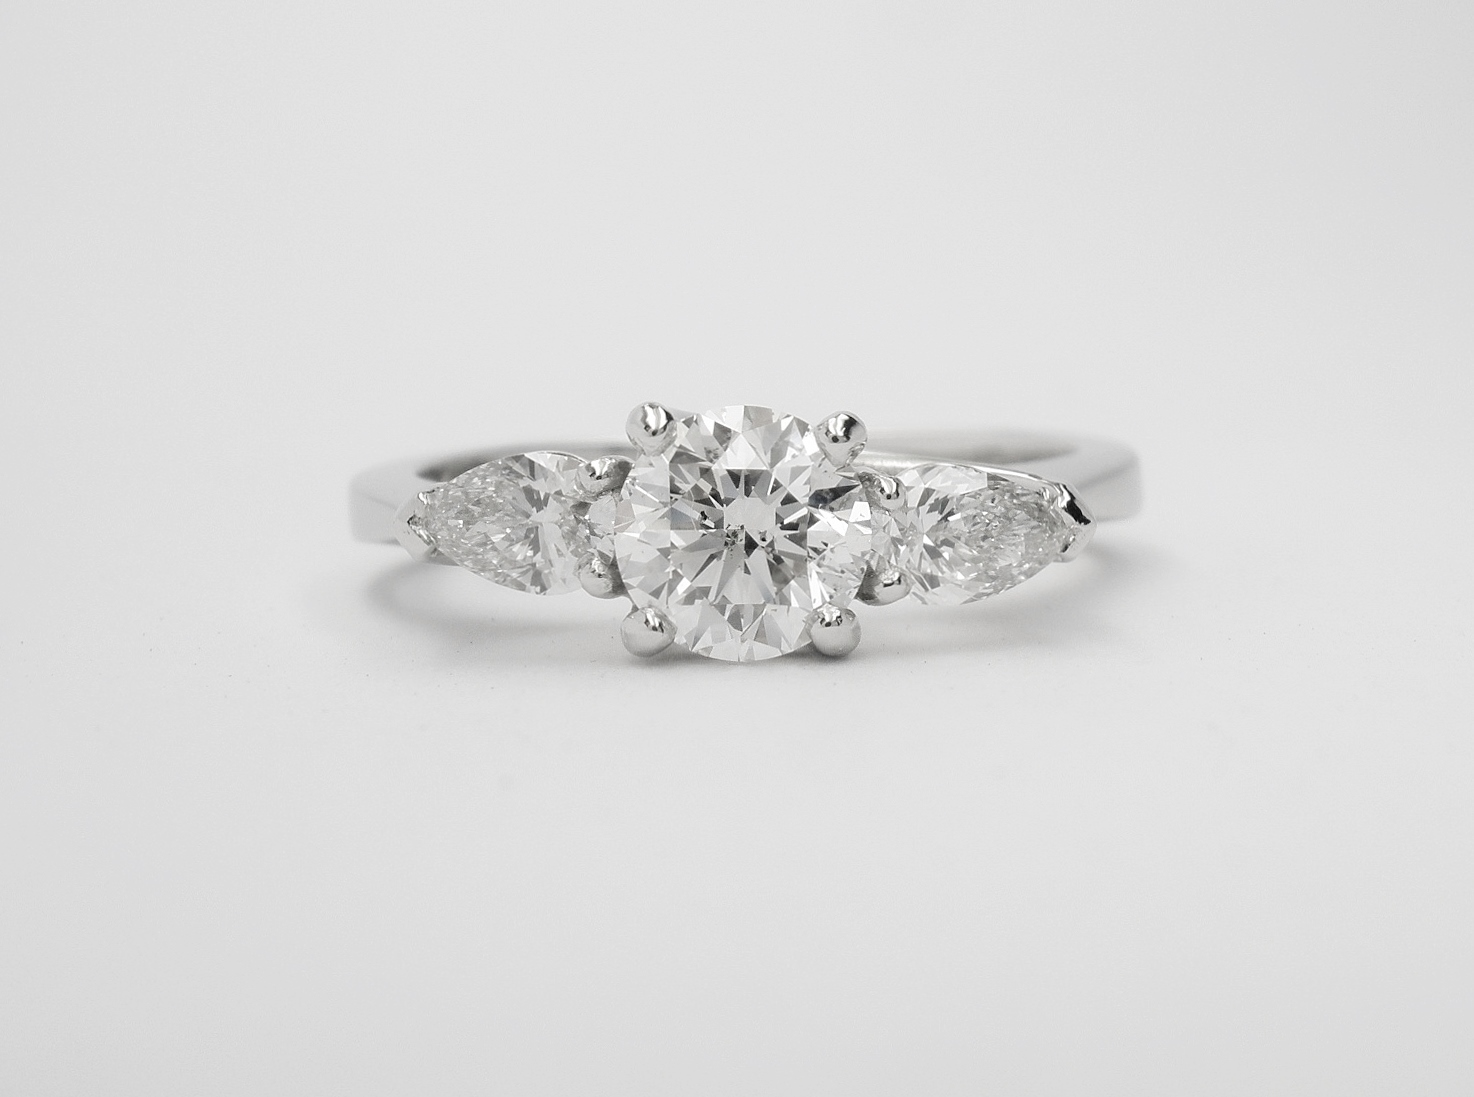 A 3 stone round brilliant cut and pear shaped diamond 'cradle' set ring mounted in platinum.